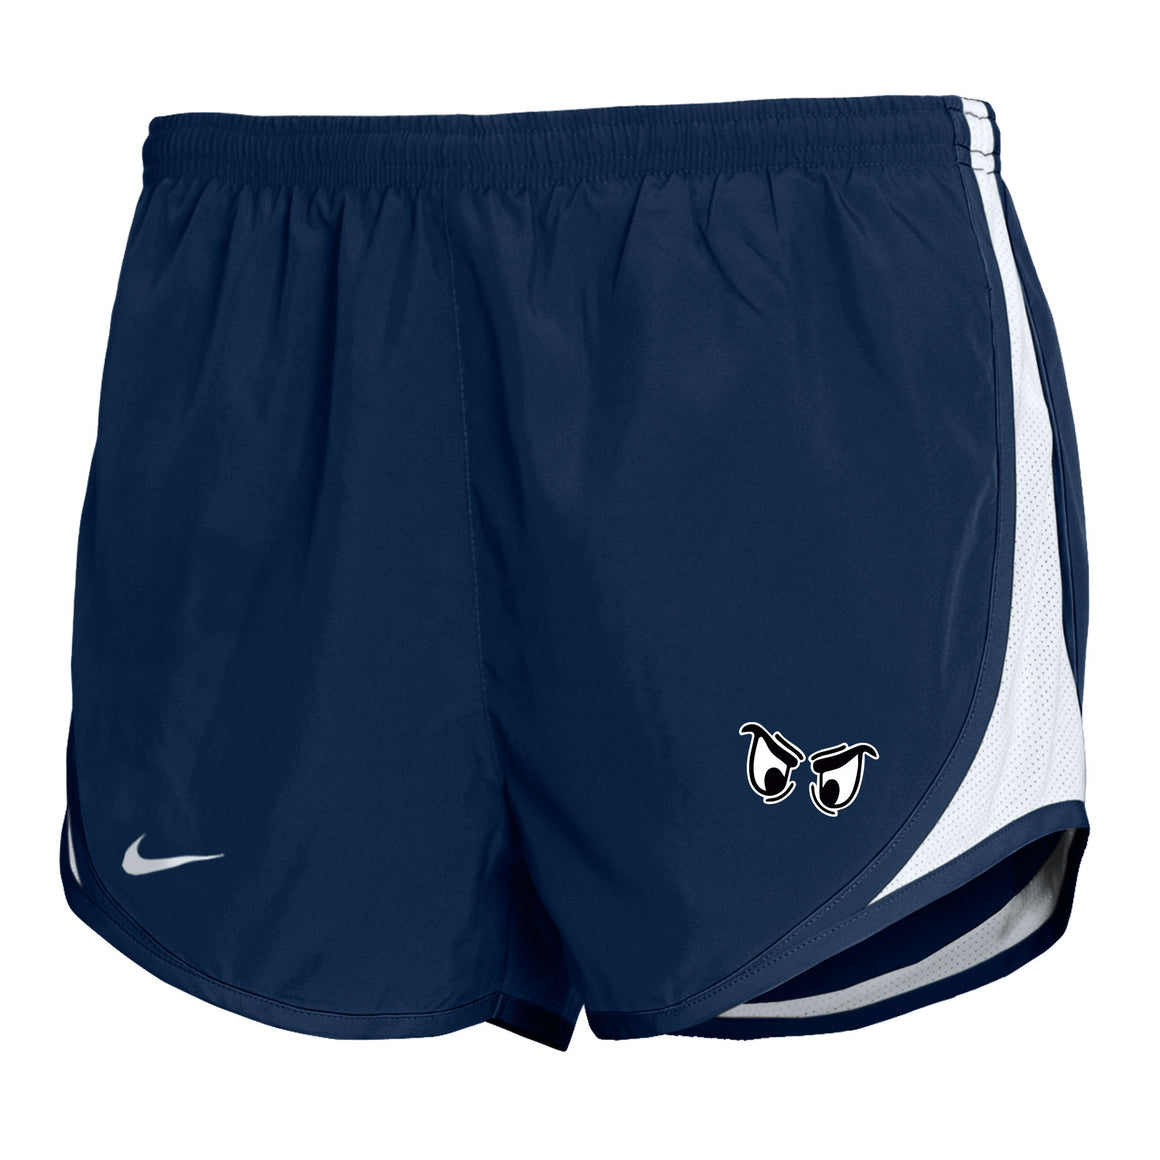 Girl's Nike Embossed Mod Tempo Shorts - Navy